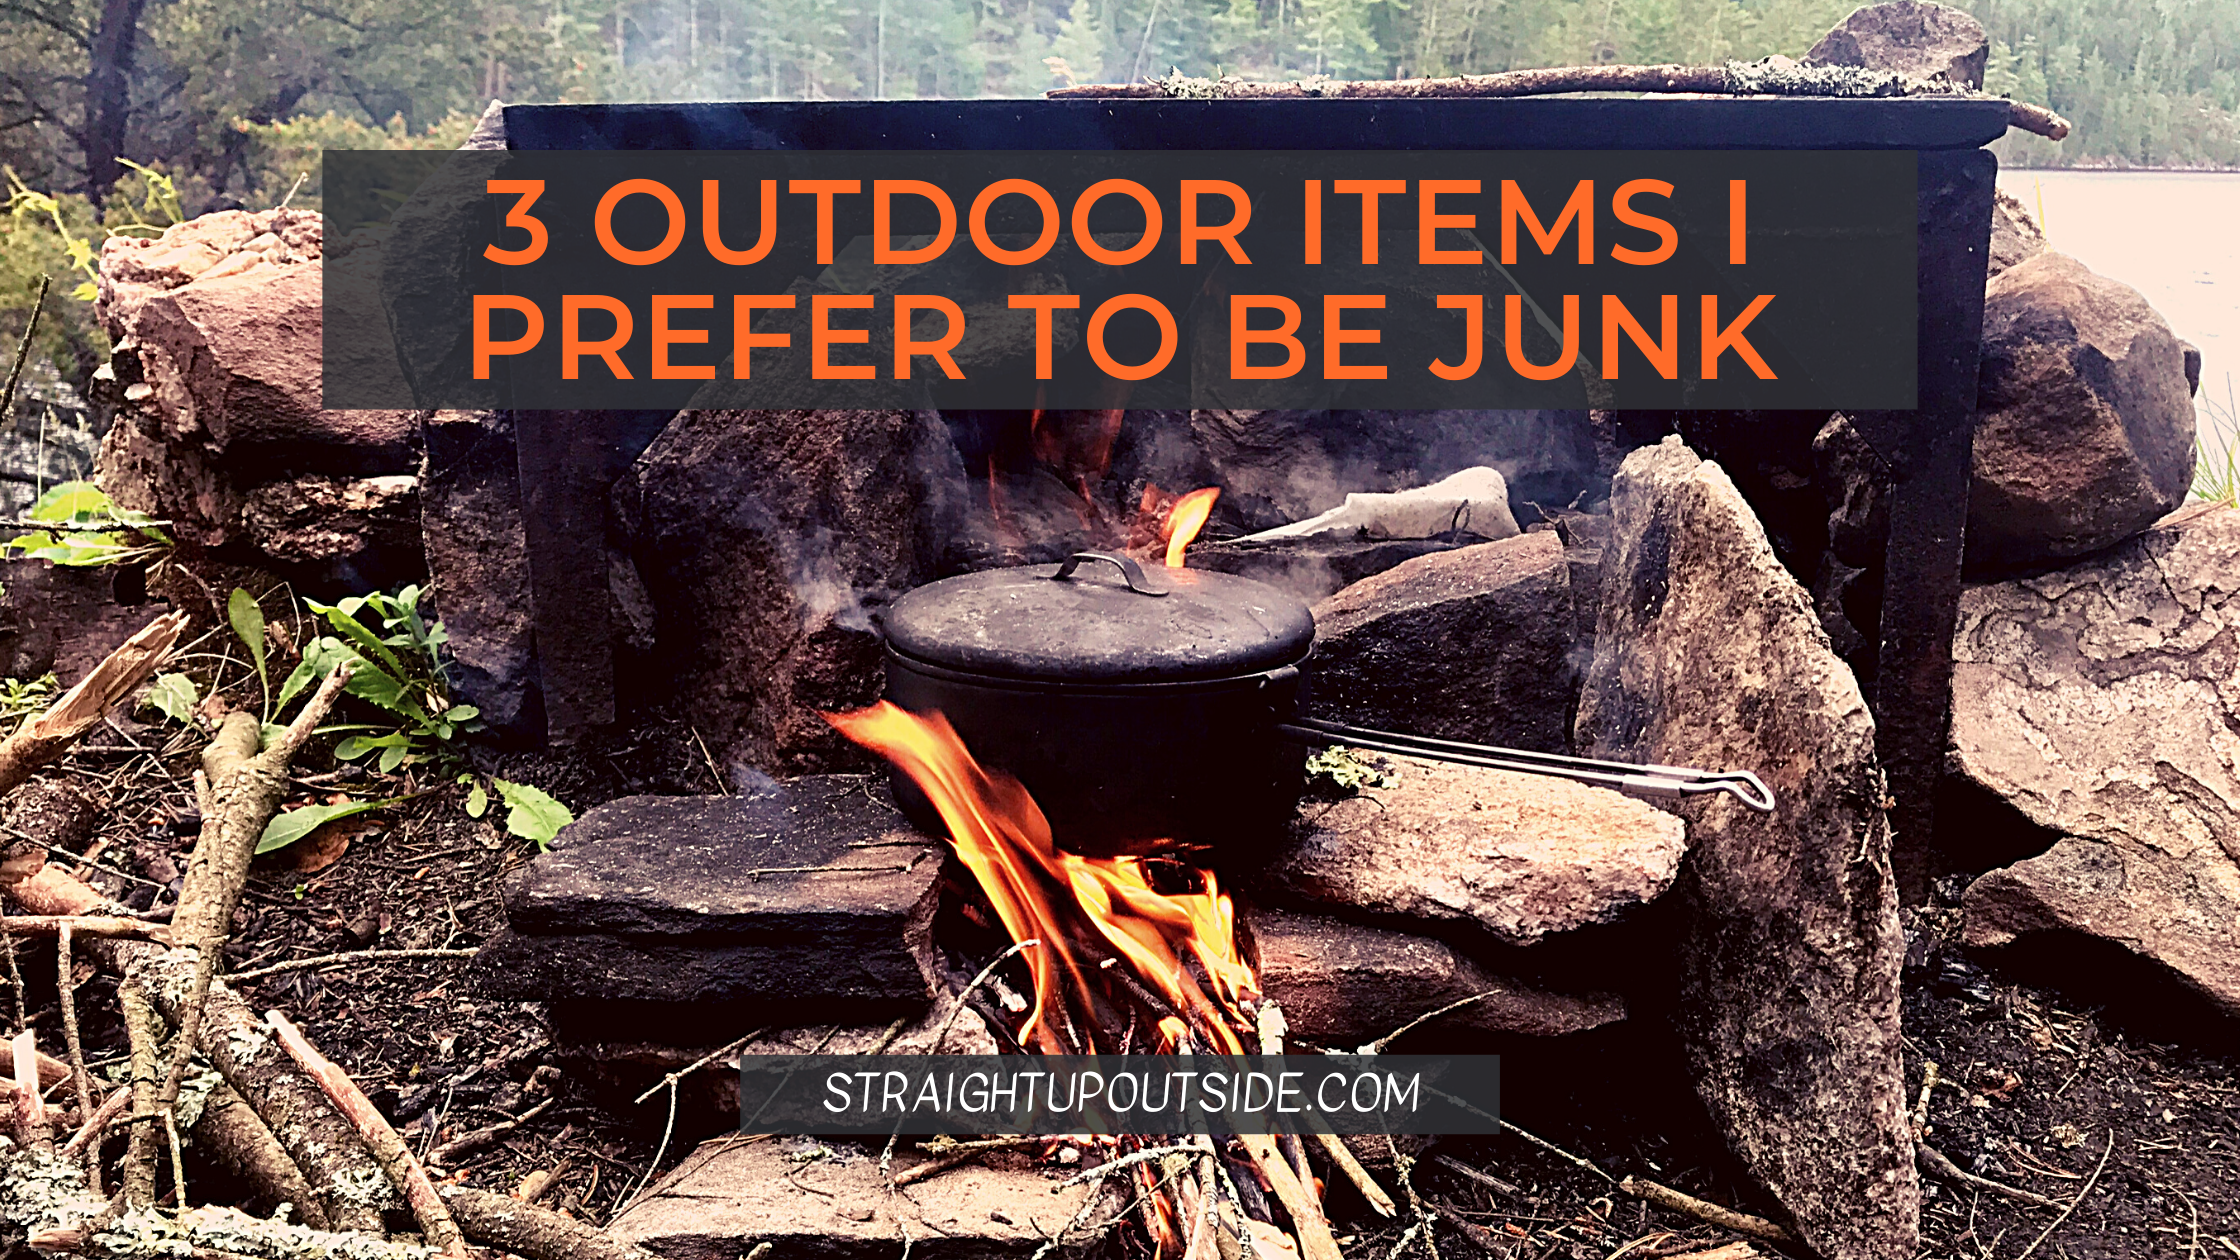 3 Outdoor Items I Prefer To Be Junk